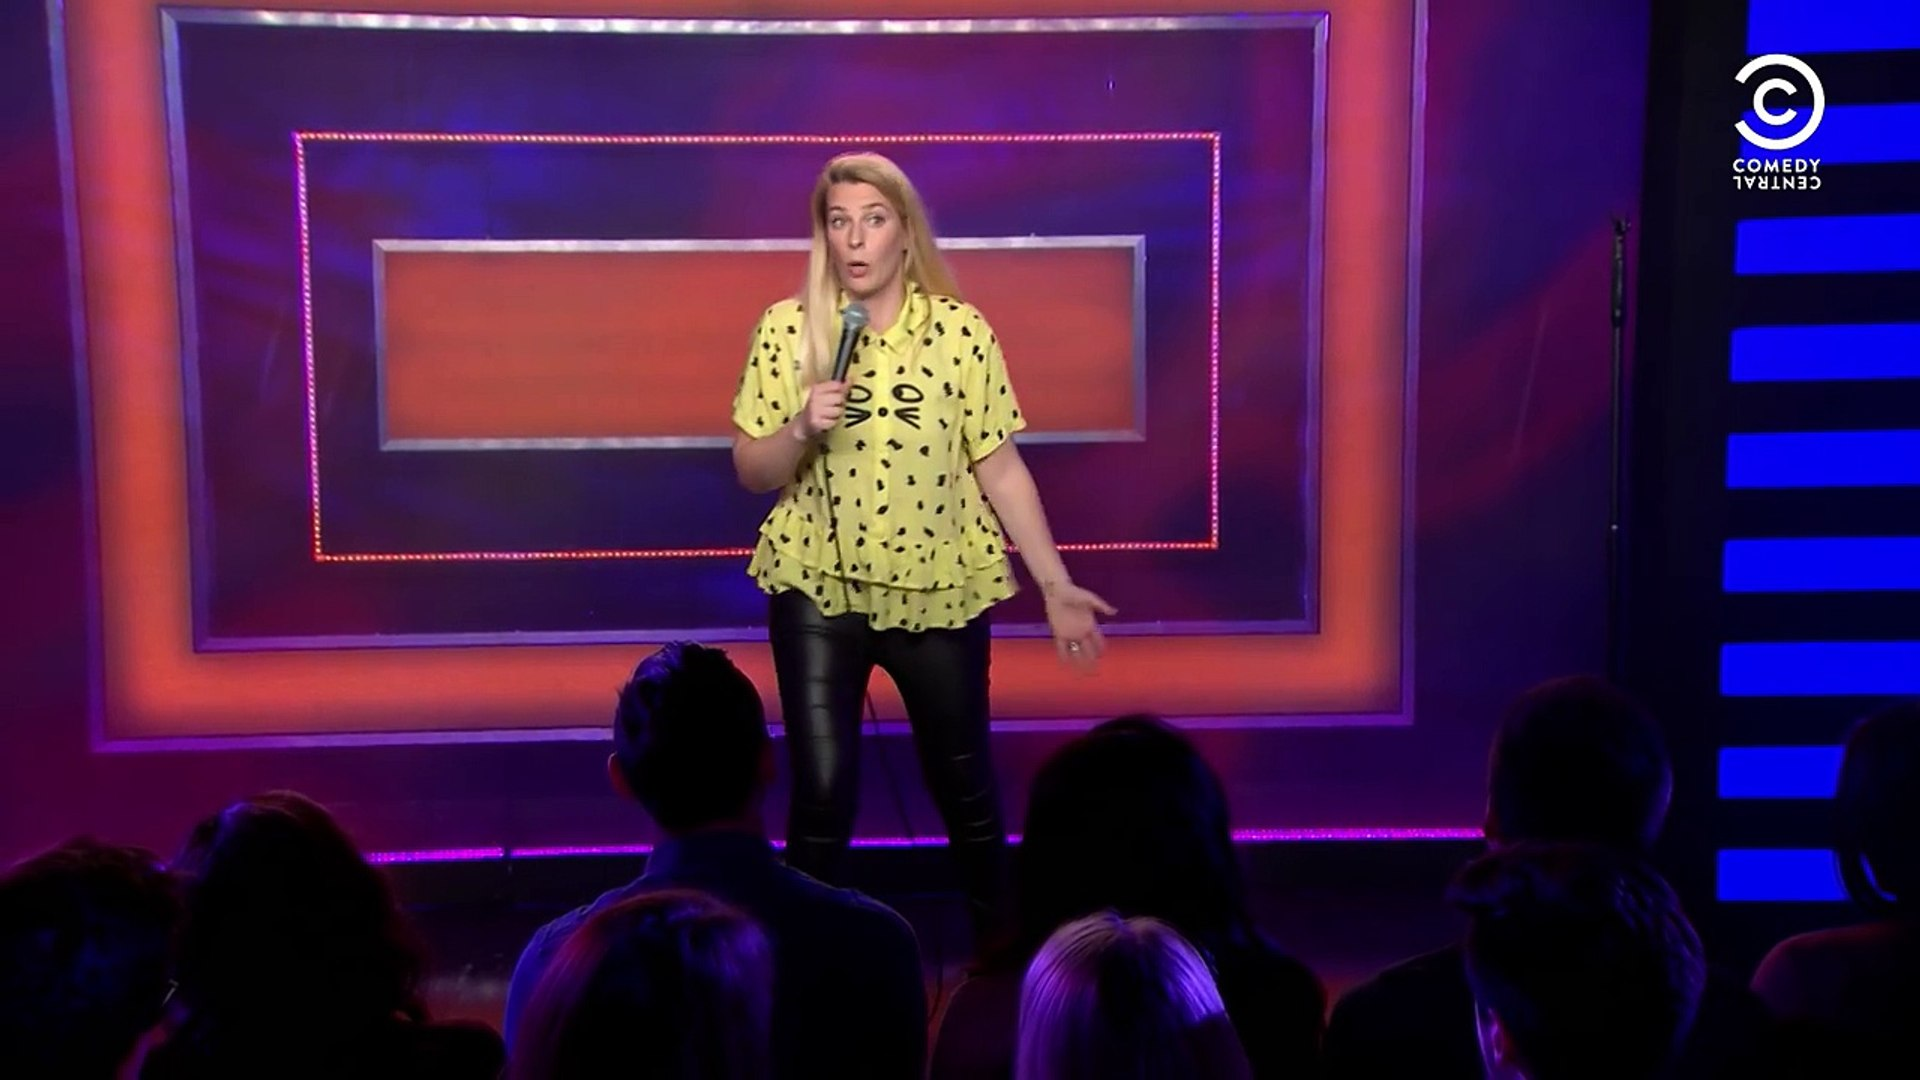 Sara Pascoe on Ru Pauls Drag Race | Comedy Central at the Comedy Store